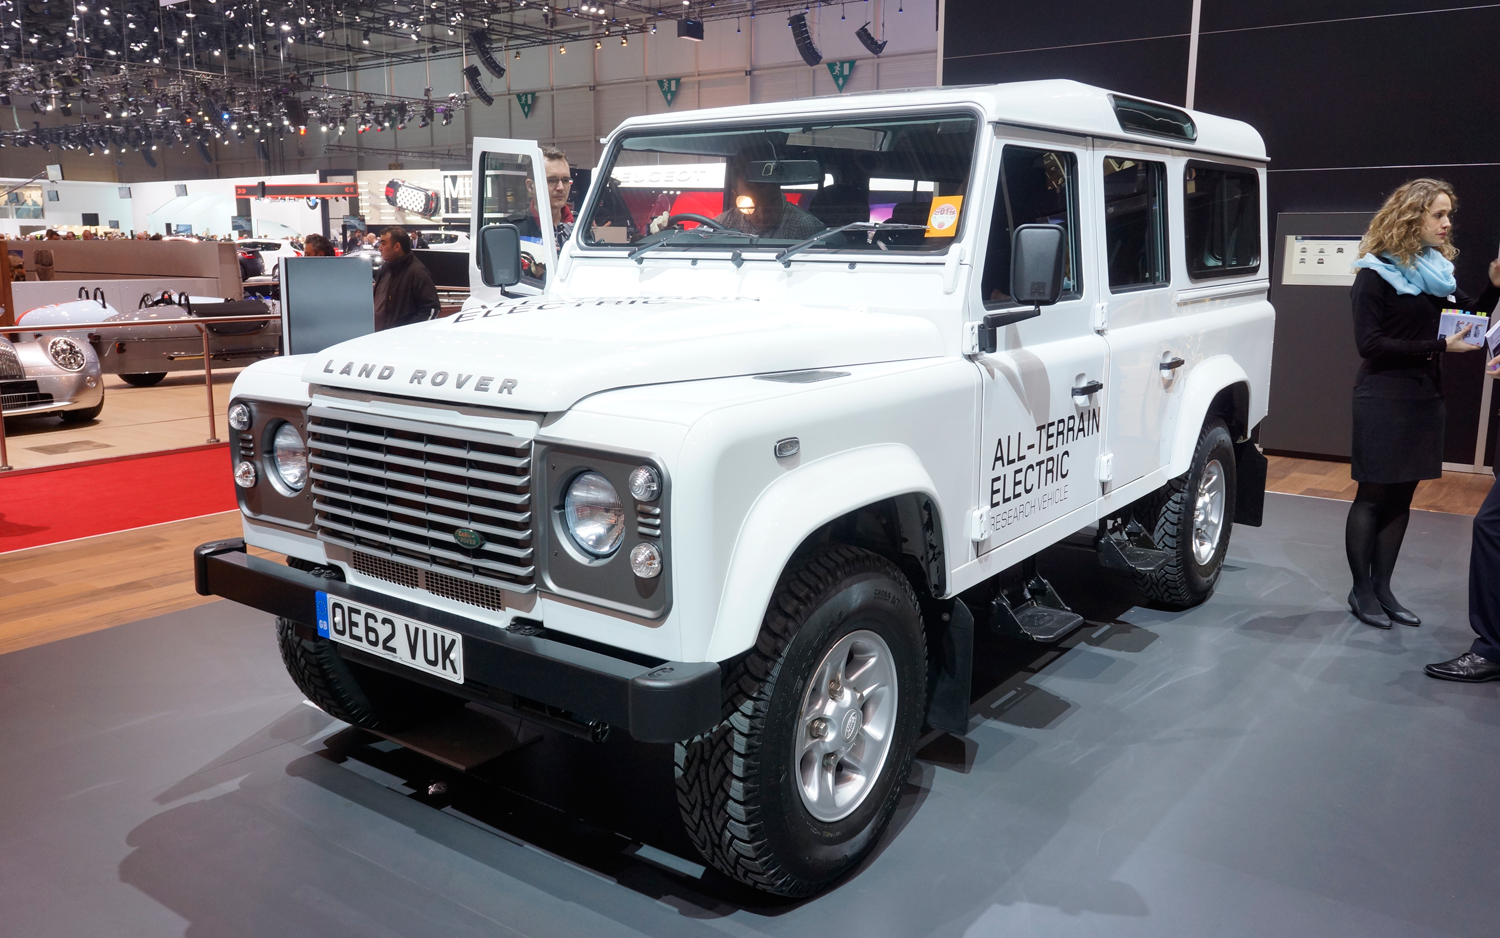 https://enthusiastnetwork.s3.amazonaws.com/uploads/sites/5/2013/02/Land-Rover-All-Terrain-Electric-front.jpg?impolicy=entryimage